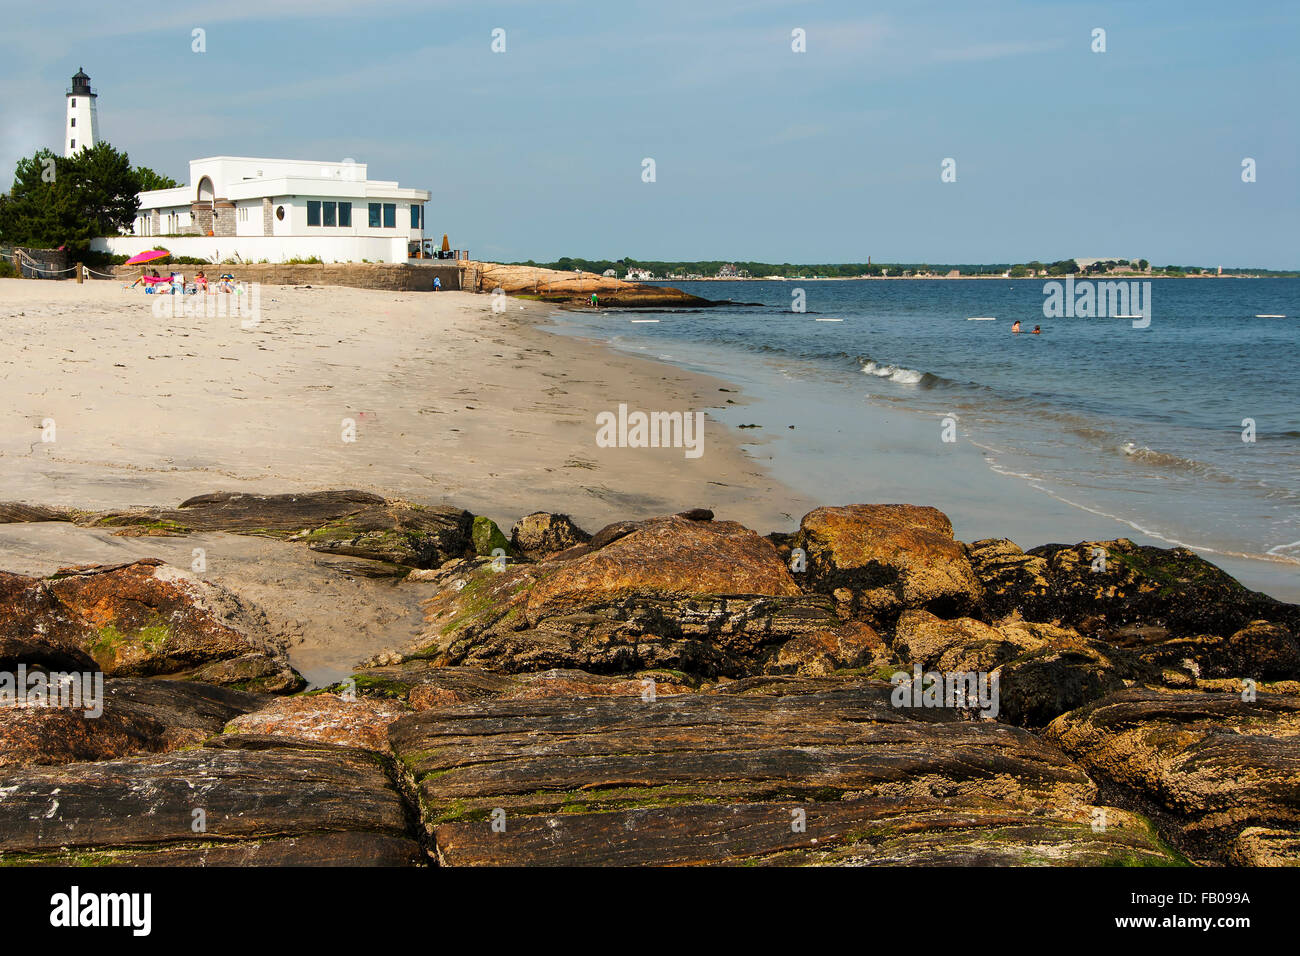 Empty beach surrounds New London Harbor lighthouse in Connecticut during low tide on a quiet warm summer day. - Stock Image